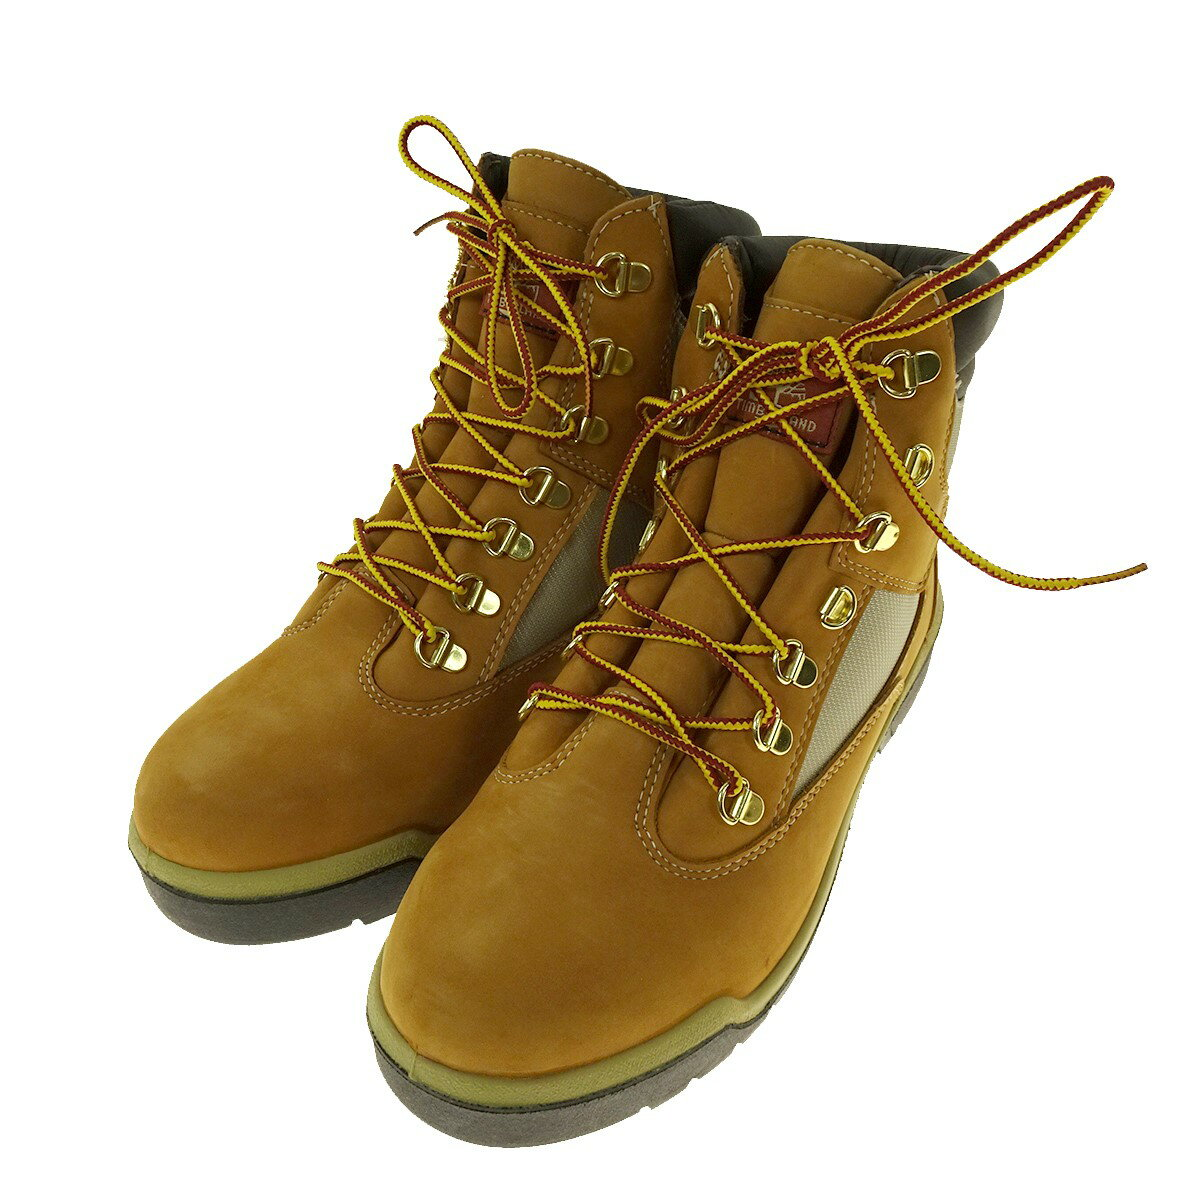 TIMBERLAND field boots TB0A18QV brown size: 27. 5 (Timberland)